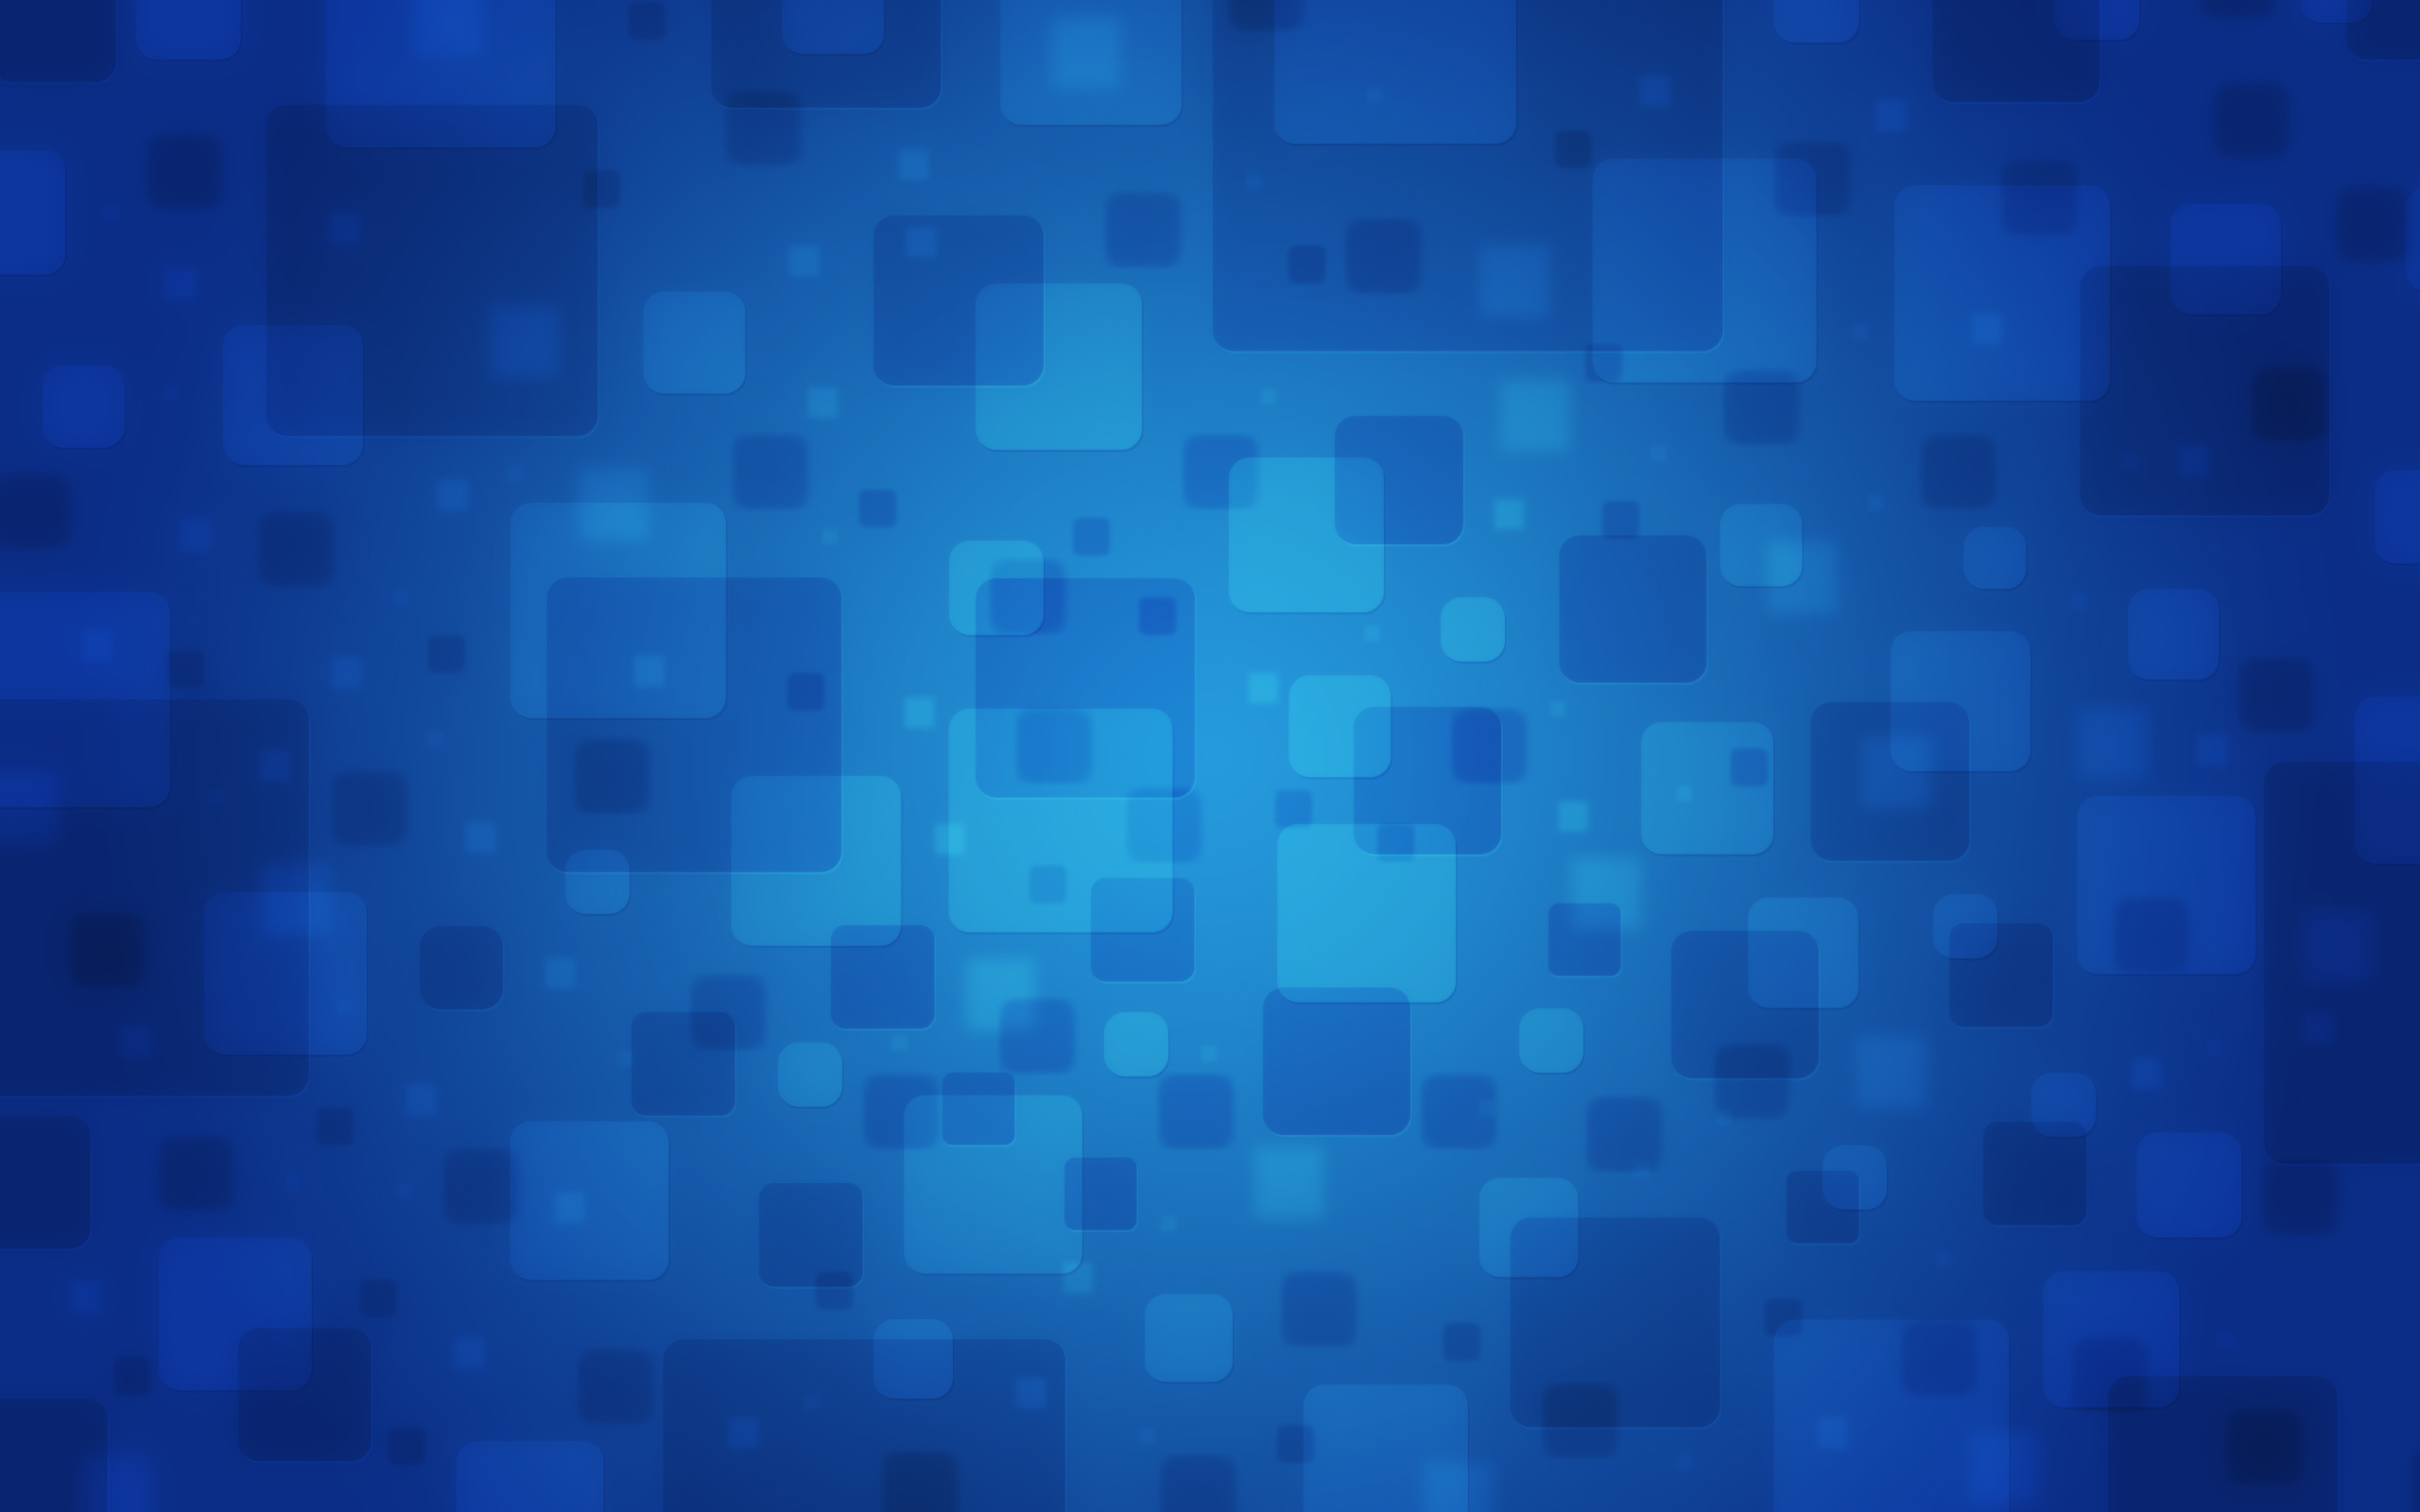 Blue Background Vectors, Photos and PSD files